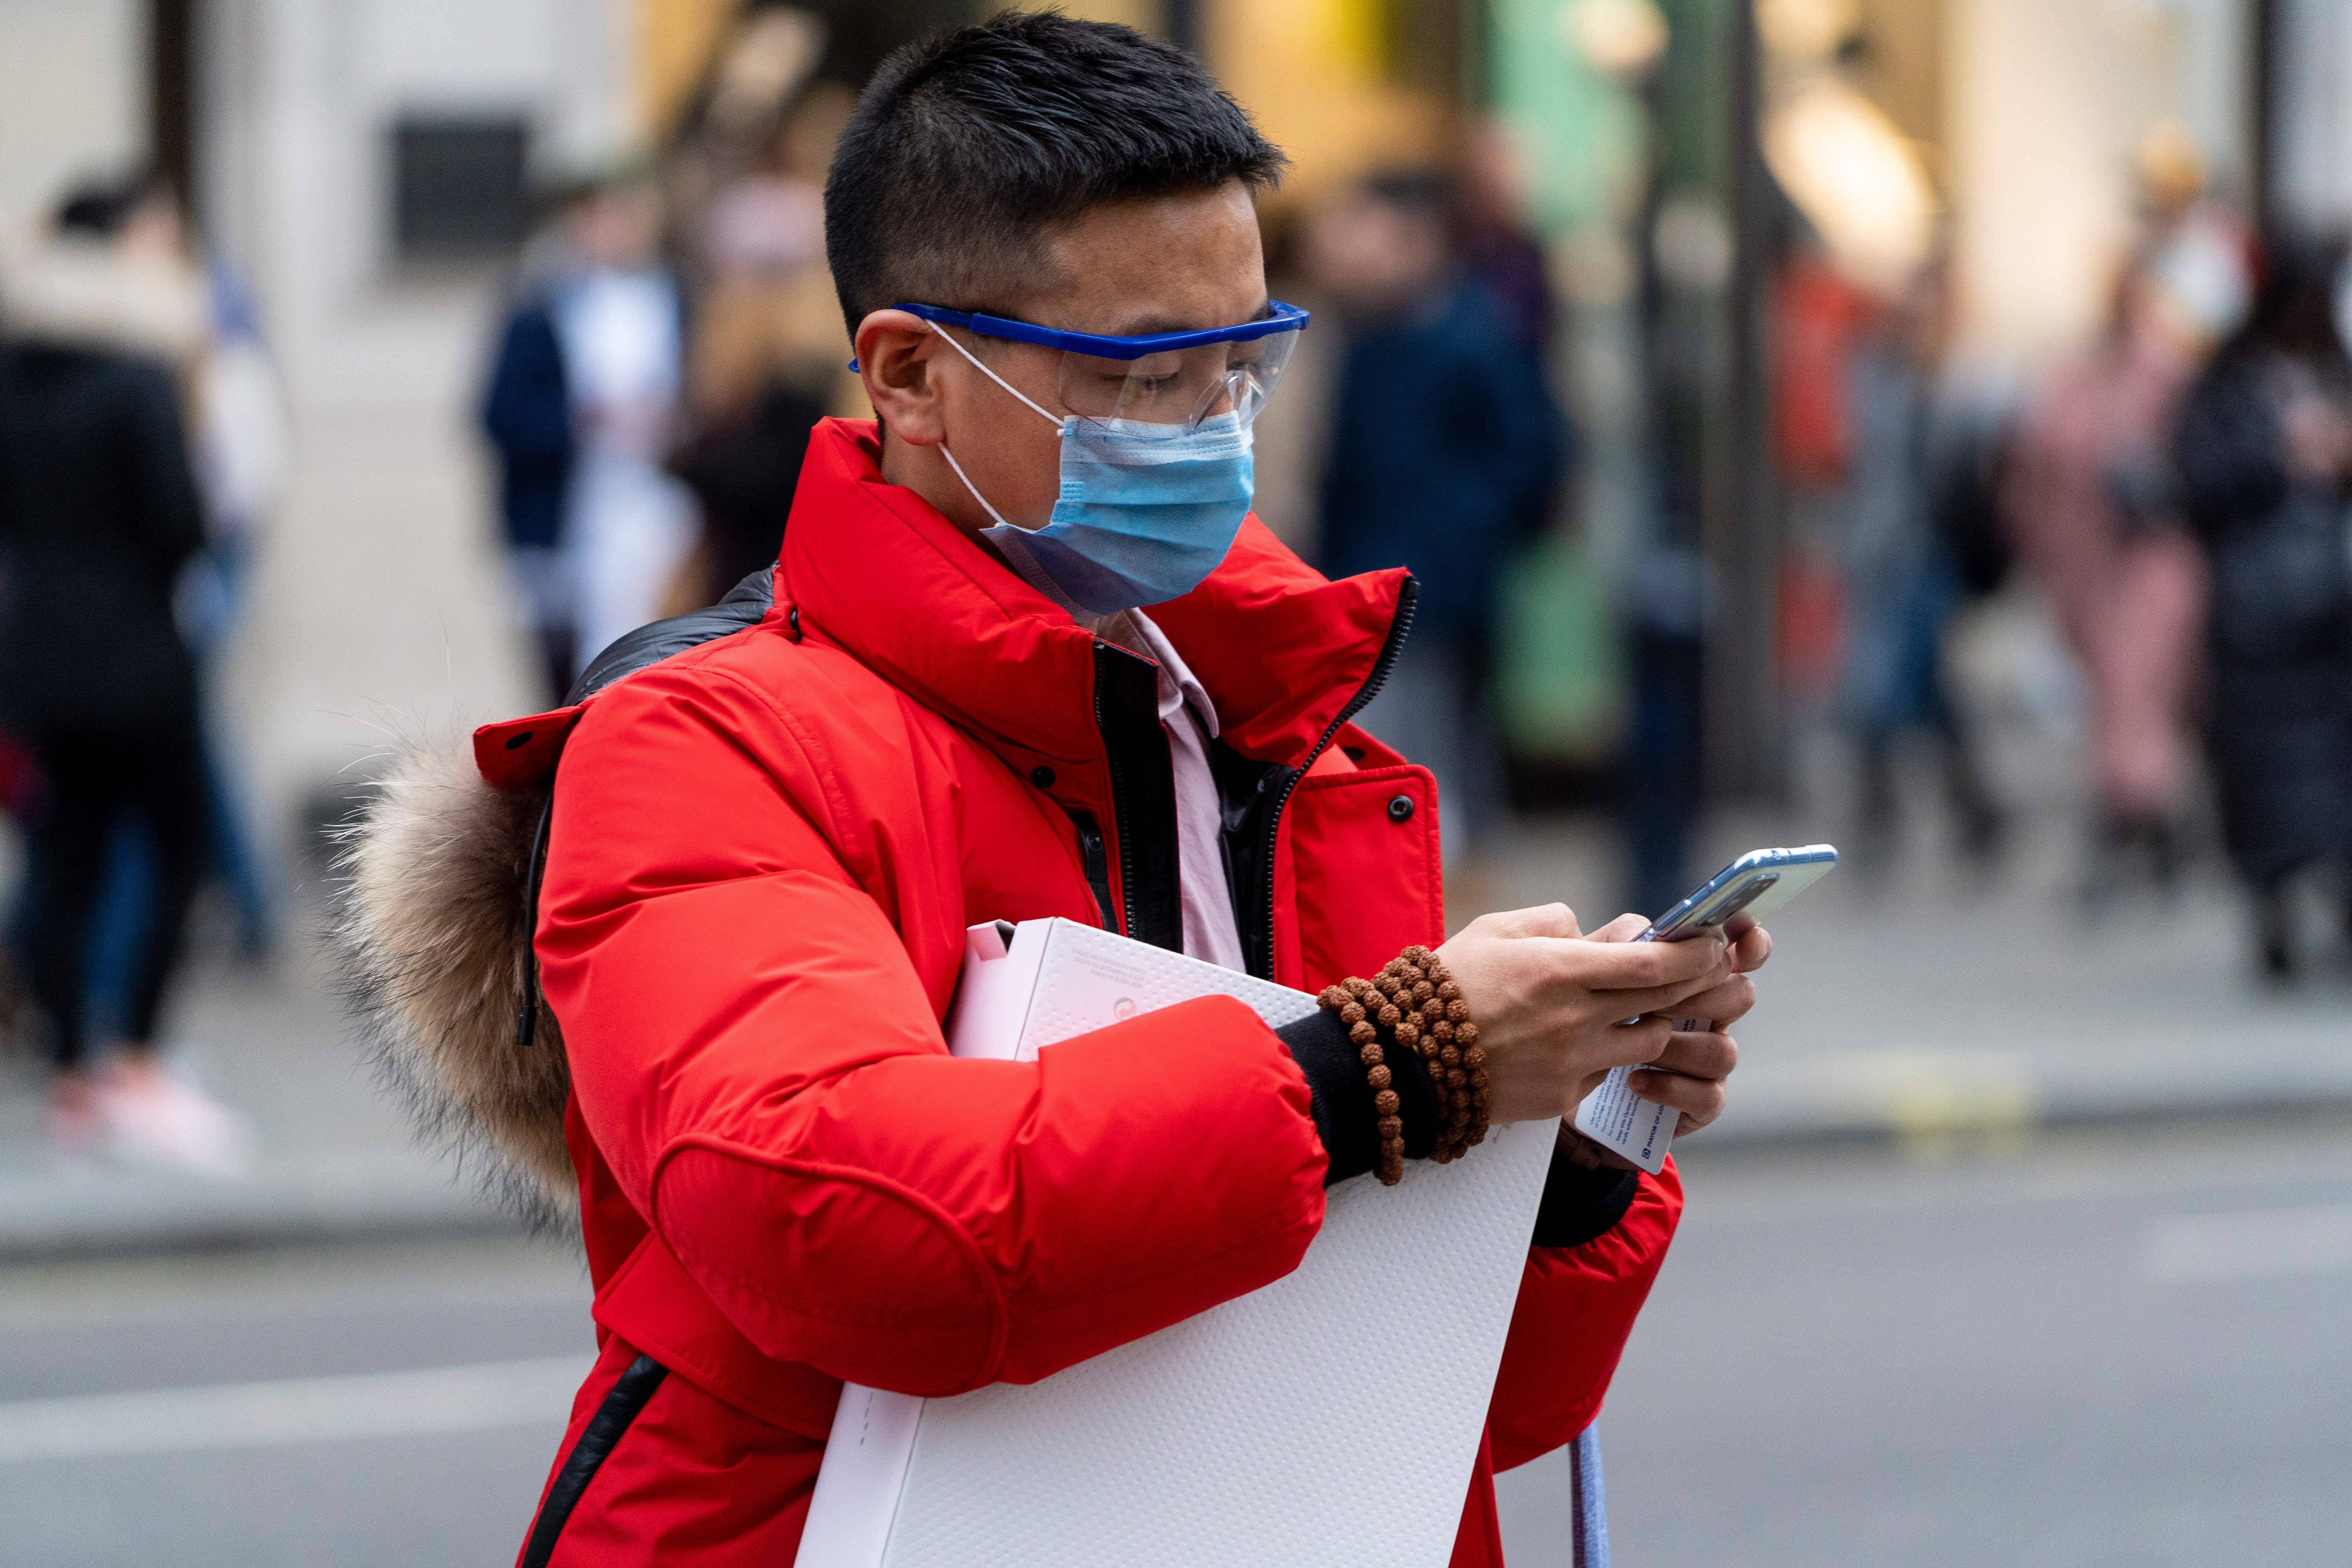 A pedestrian wears a surgical mask as he checks his phone while walking along London's Regent Street in central London on Jan. 25. European airports from London to Moscow stepped up checks Wednesday on flights from the Chinese city at the heart of the coronavirus that has killed 41 people and spread to the United States.